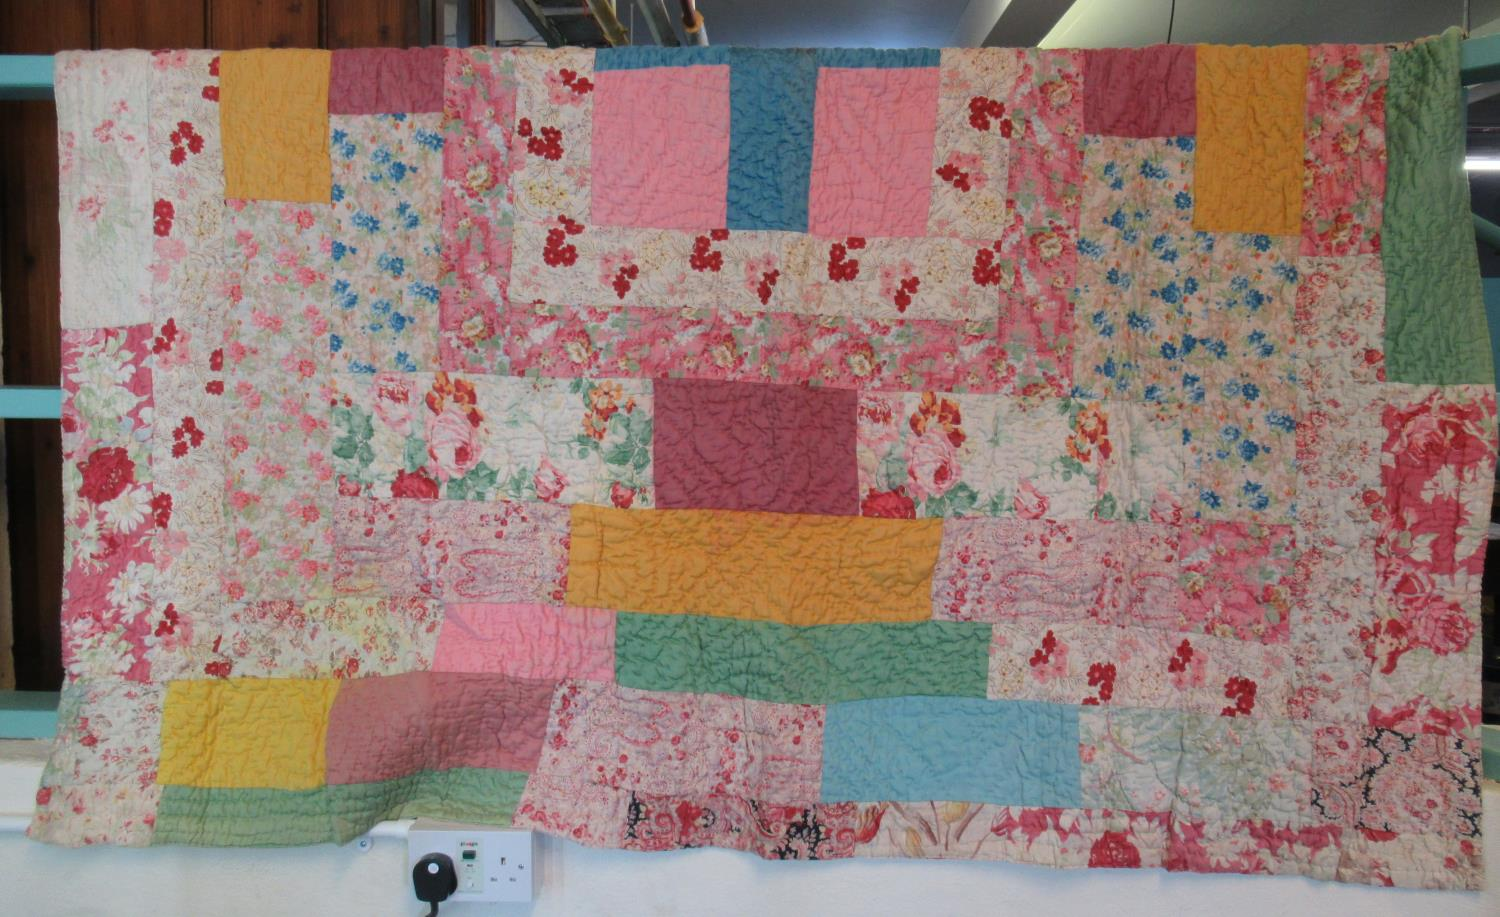 Colourful vintage patchwork cotton quilt with patches in various fabrics both floral and plain. (B.